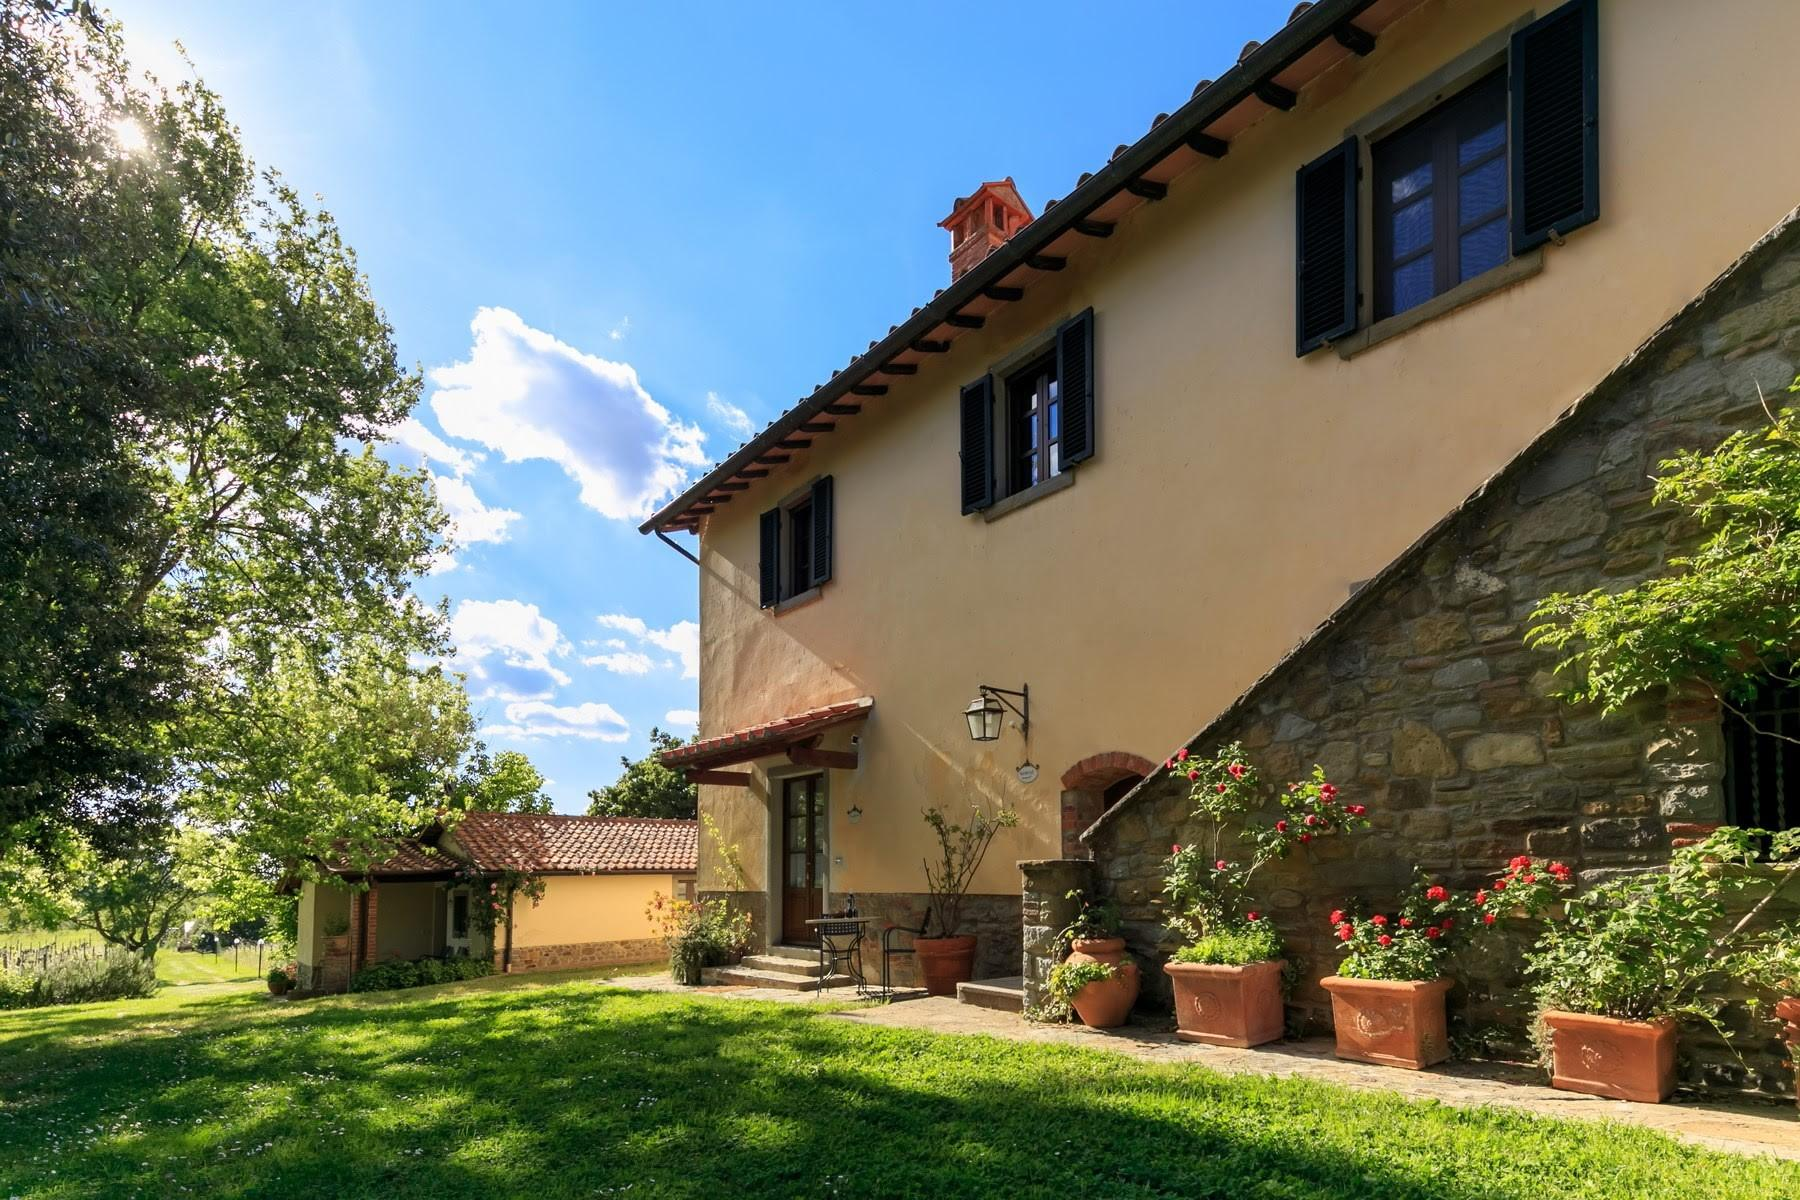 Agritourismo and Biodynamic farm in the heart of Tuscany with 15 ha of land. - 4